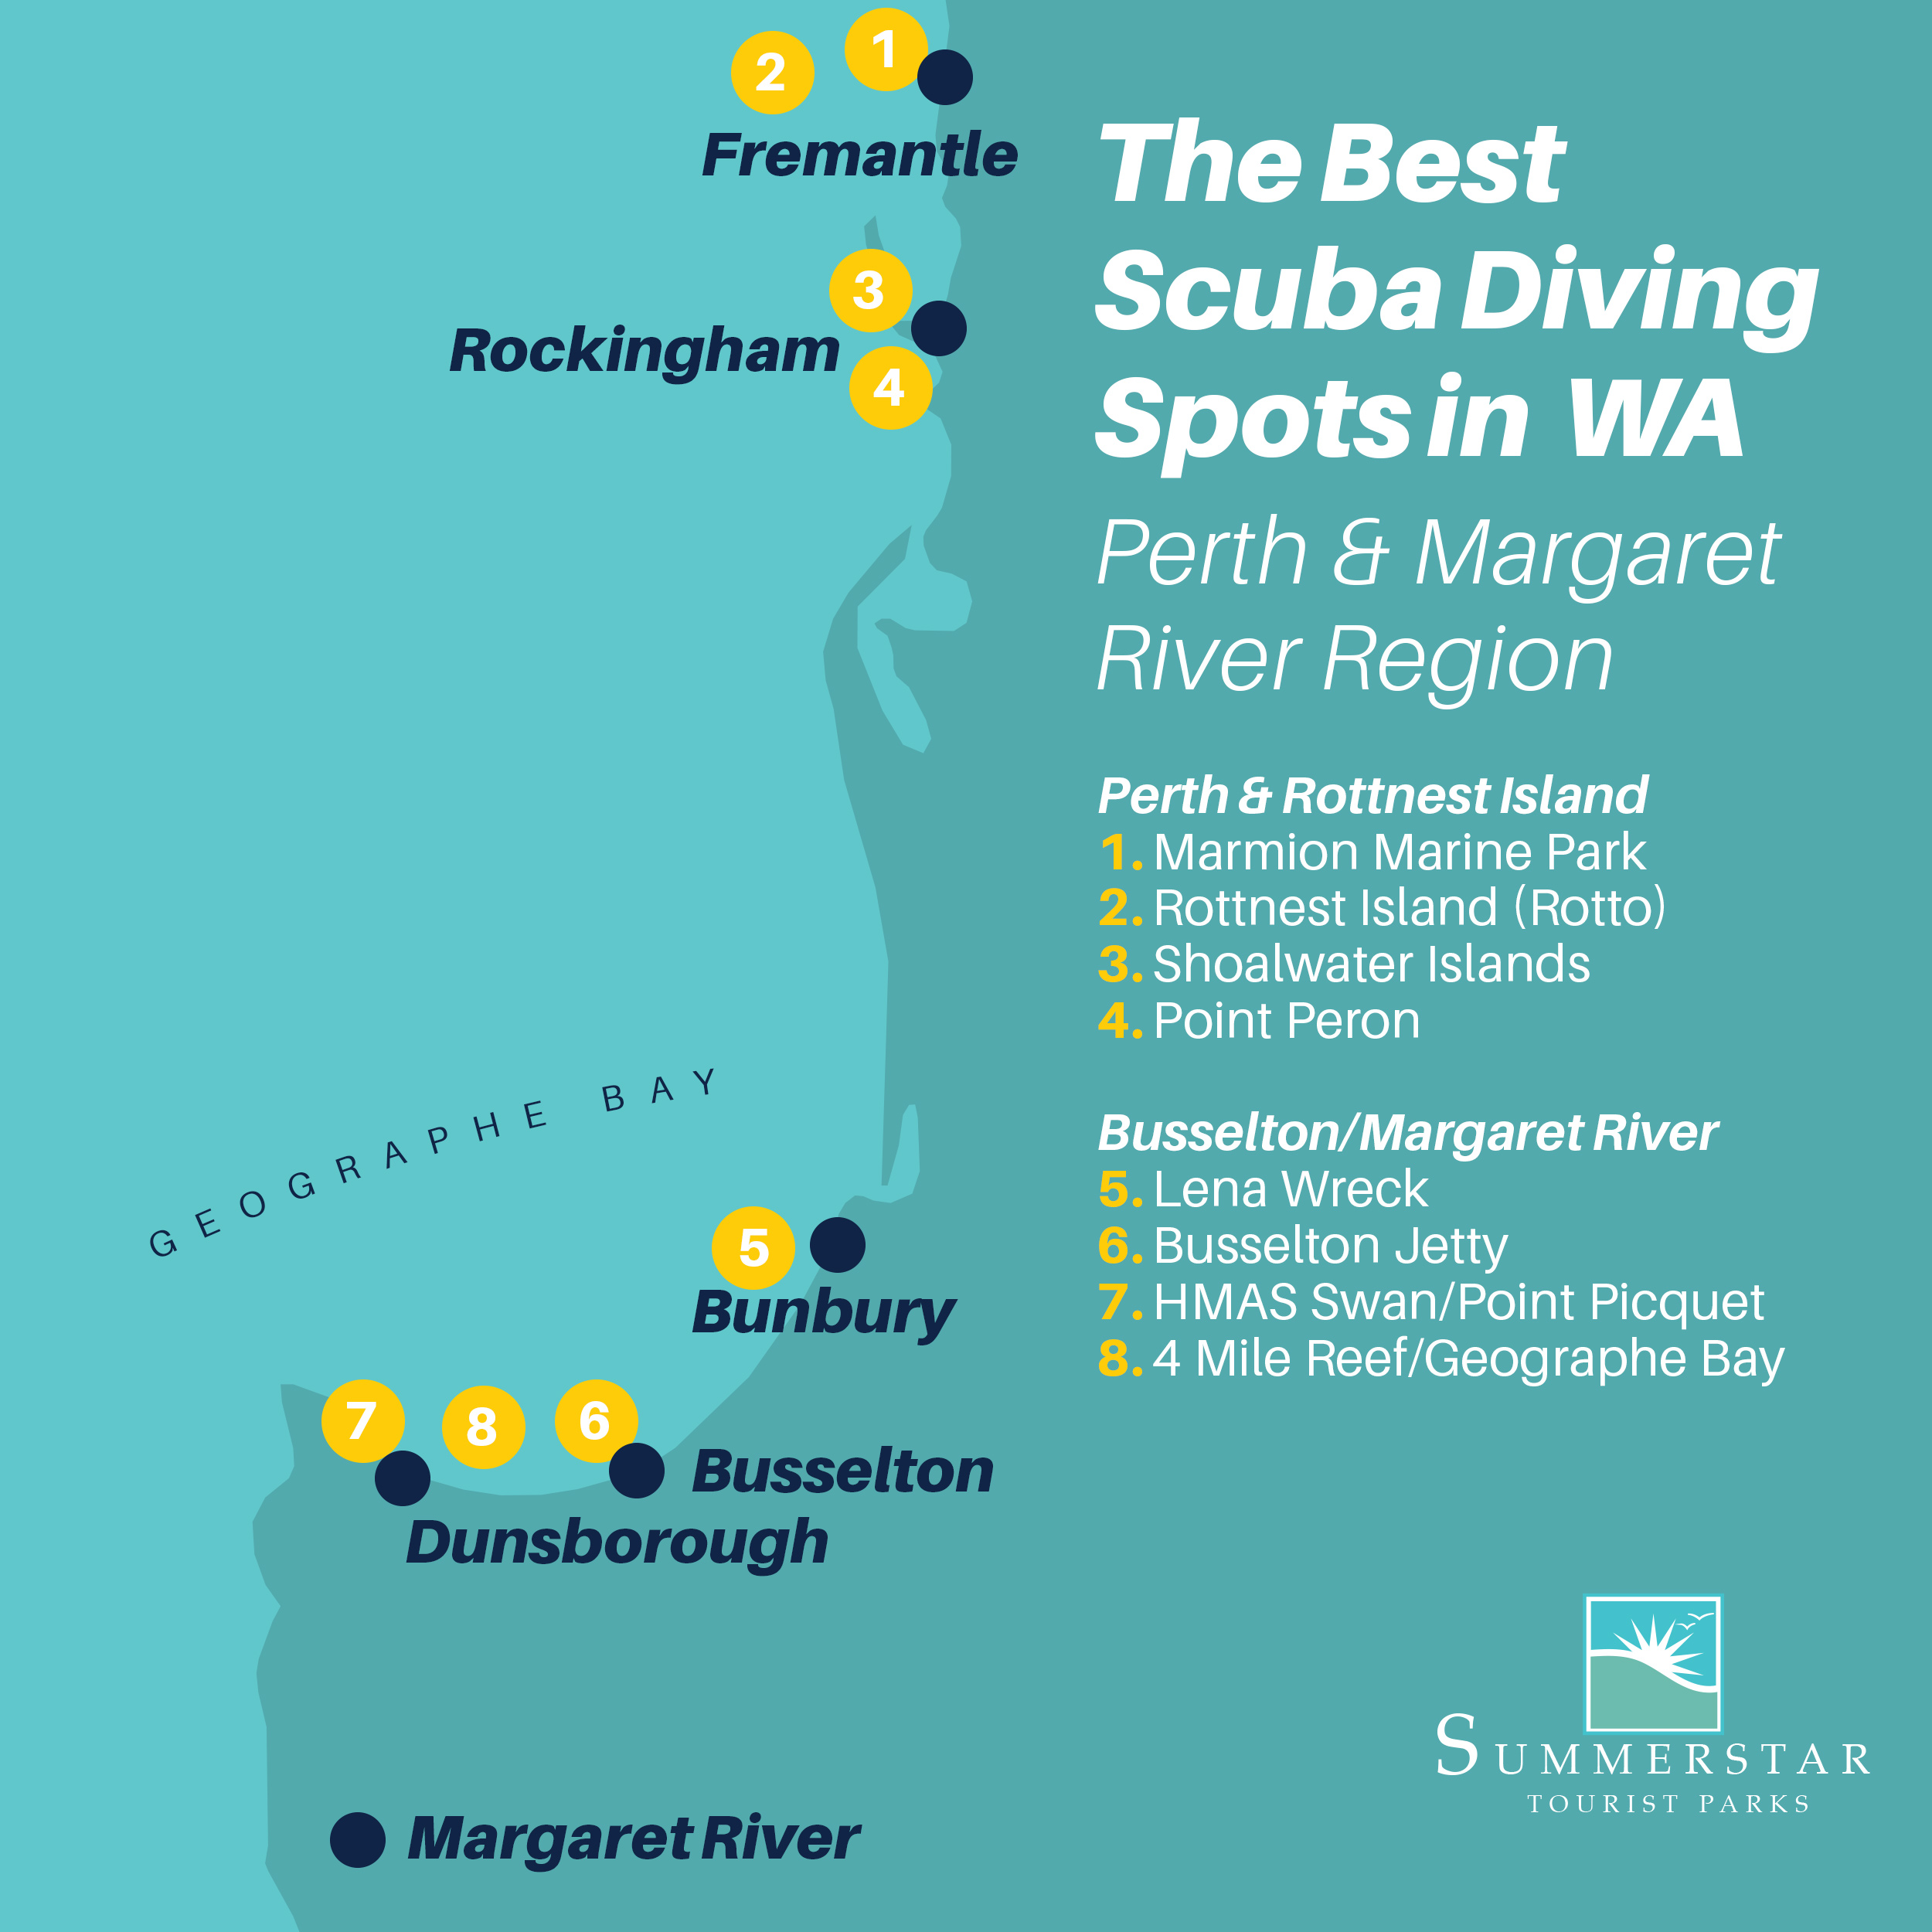 The Best Scuba Diving Spots in WA Perth and Margaret River region.